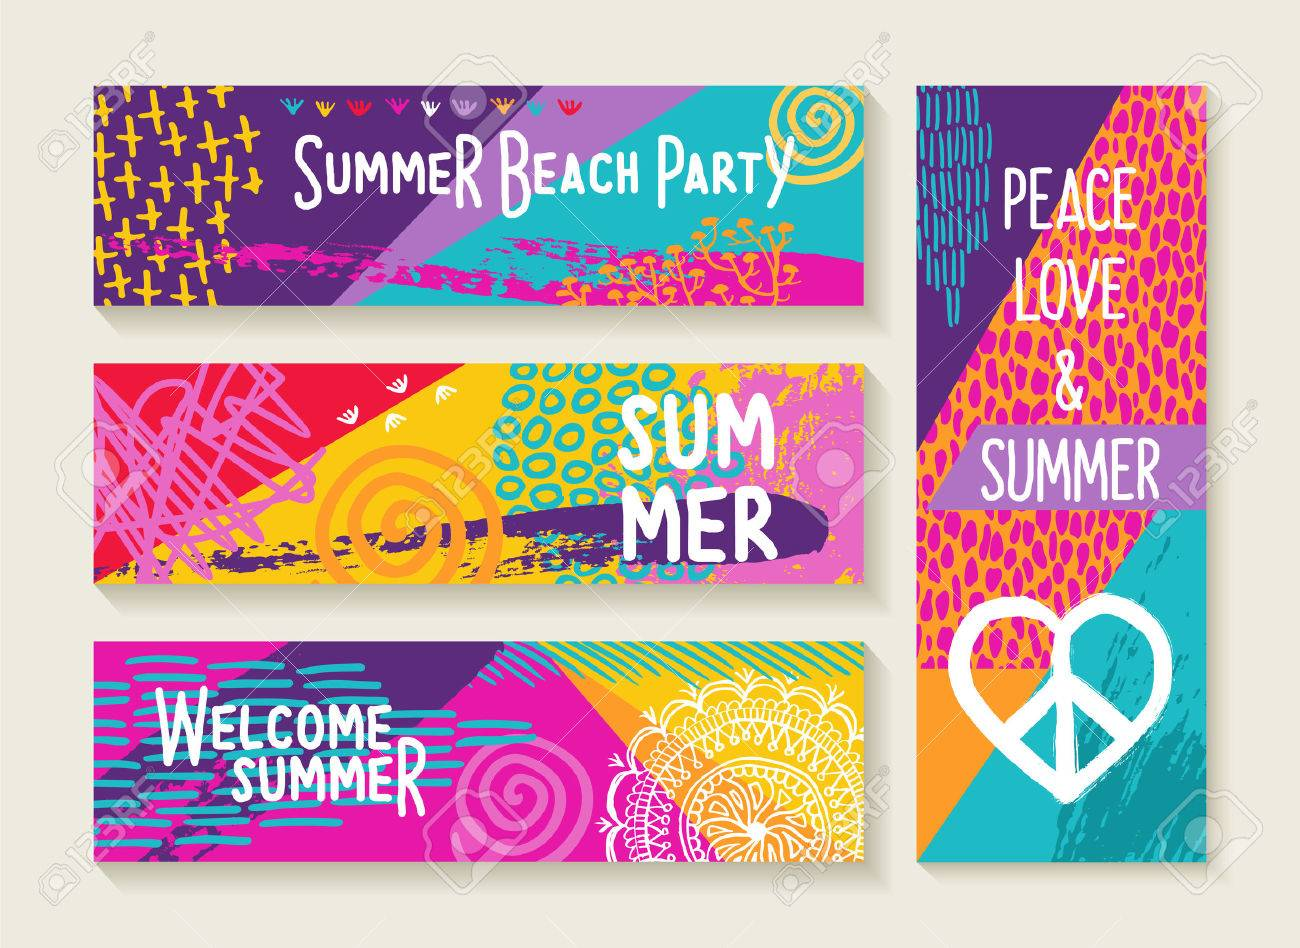 Set Of Colorful Summer Designs Happy Elements And Text Quotes For Beach Party Invitation